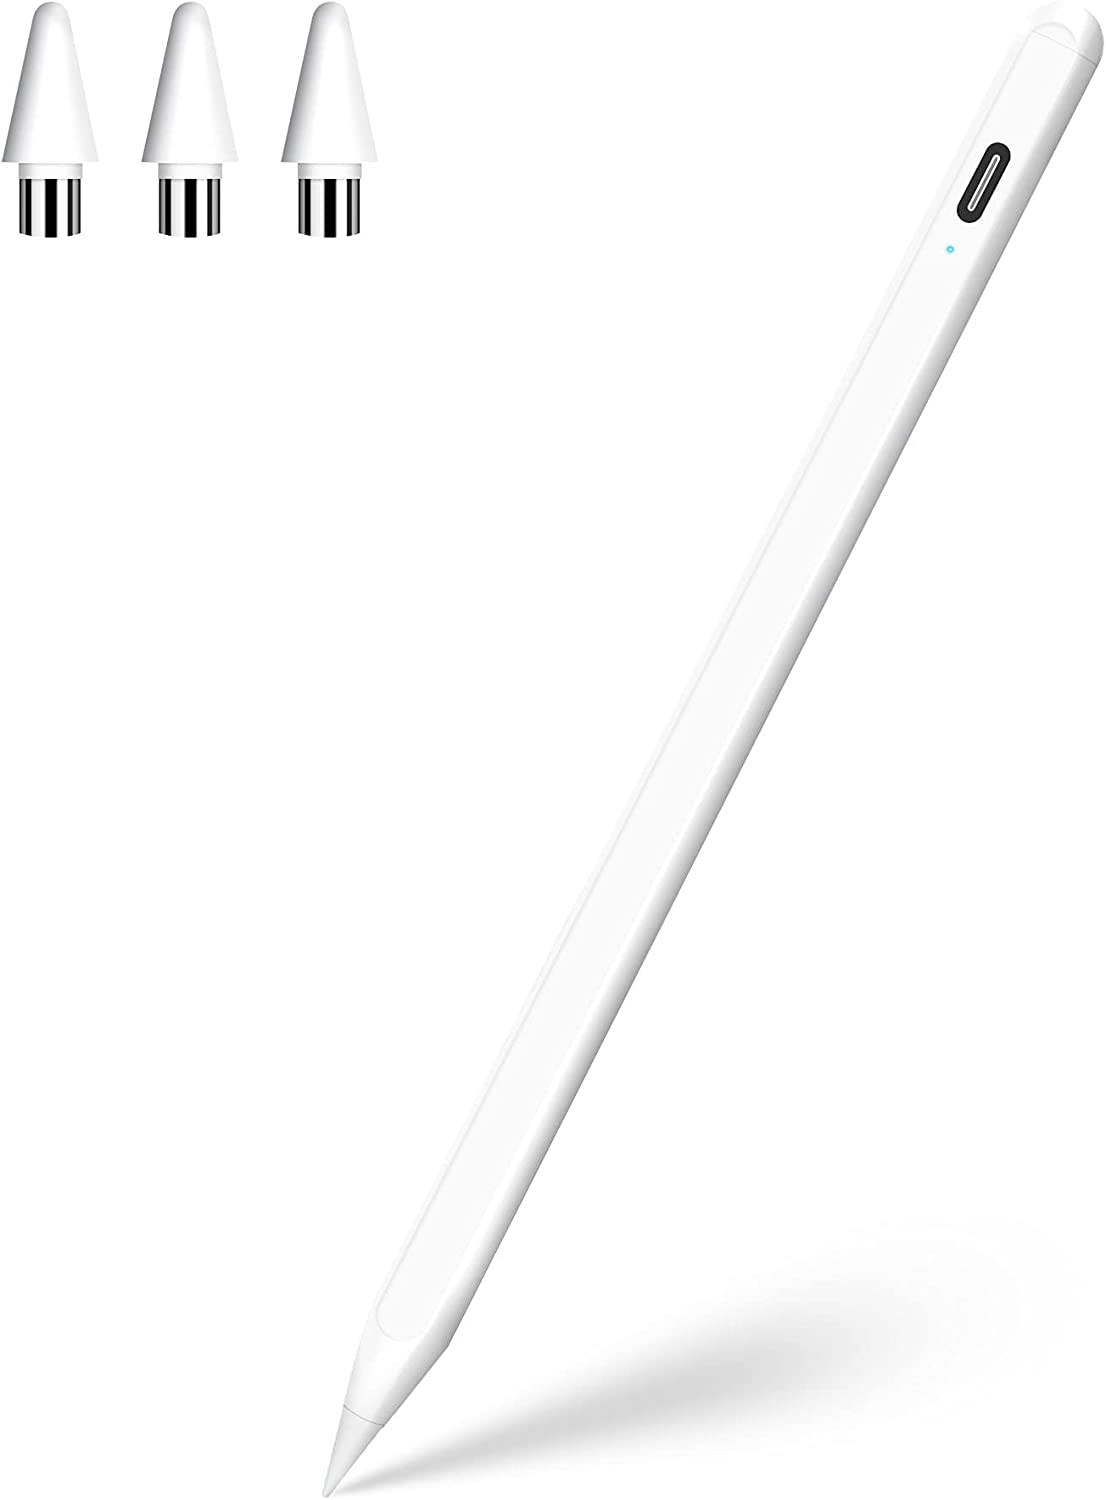 FaAmour Stylus Pens for Touch Screens - Rechargeable Stylus Pen with Magnetic Design for Apple iPad/iPad Air/iPad Mini/iPad Pro/iPhone/Android/iOS/Samsung/Kindle and Other Tablets